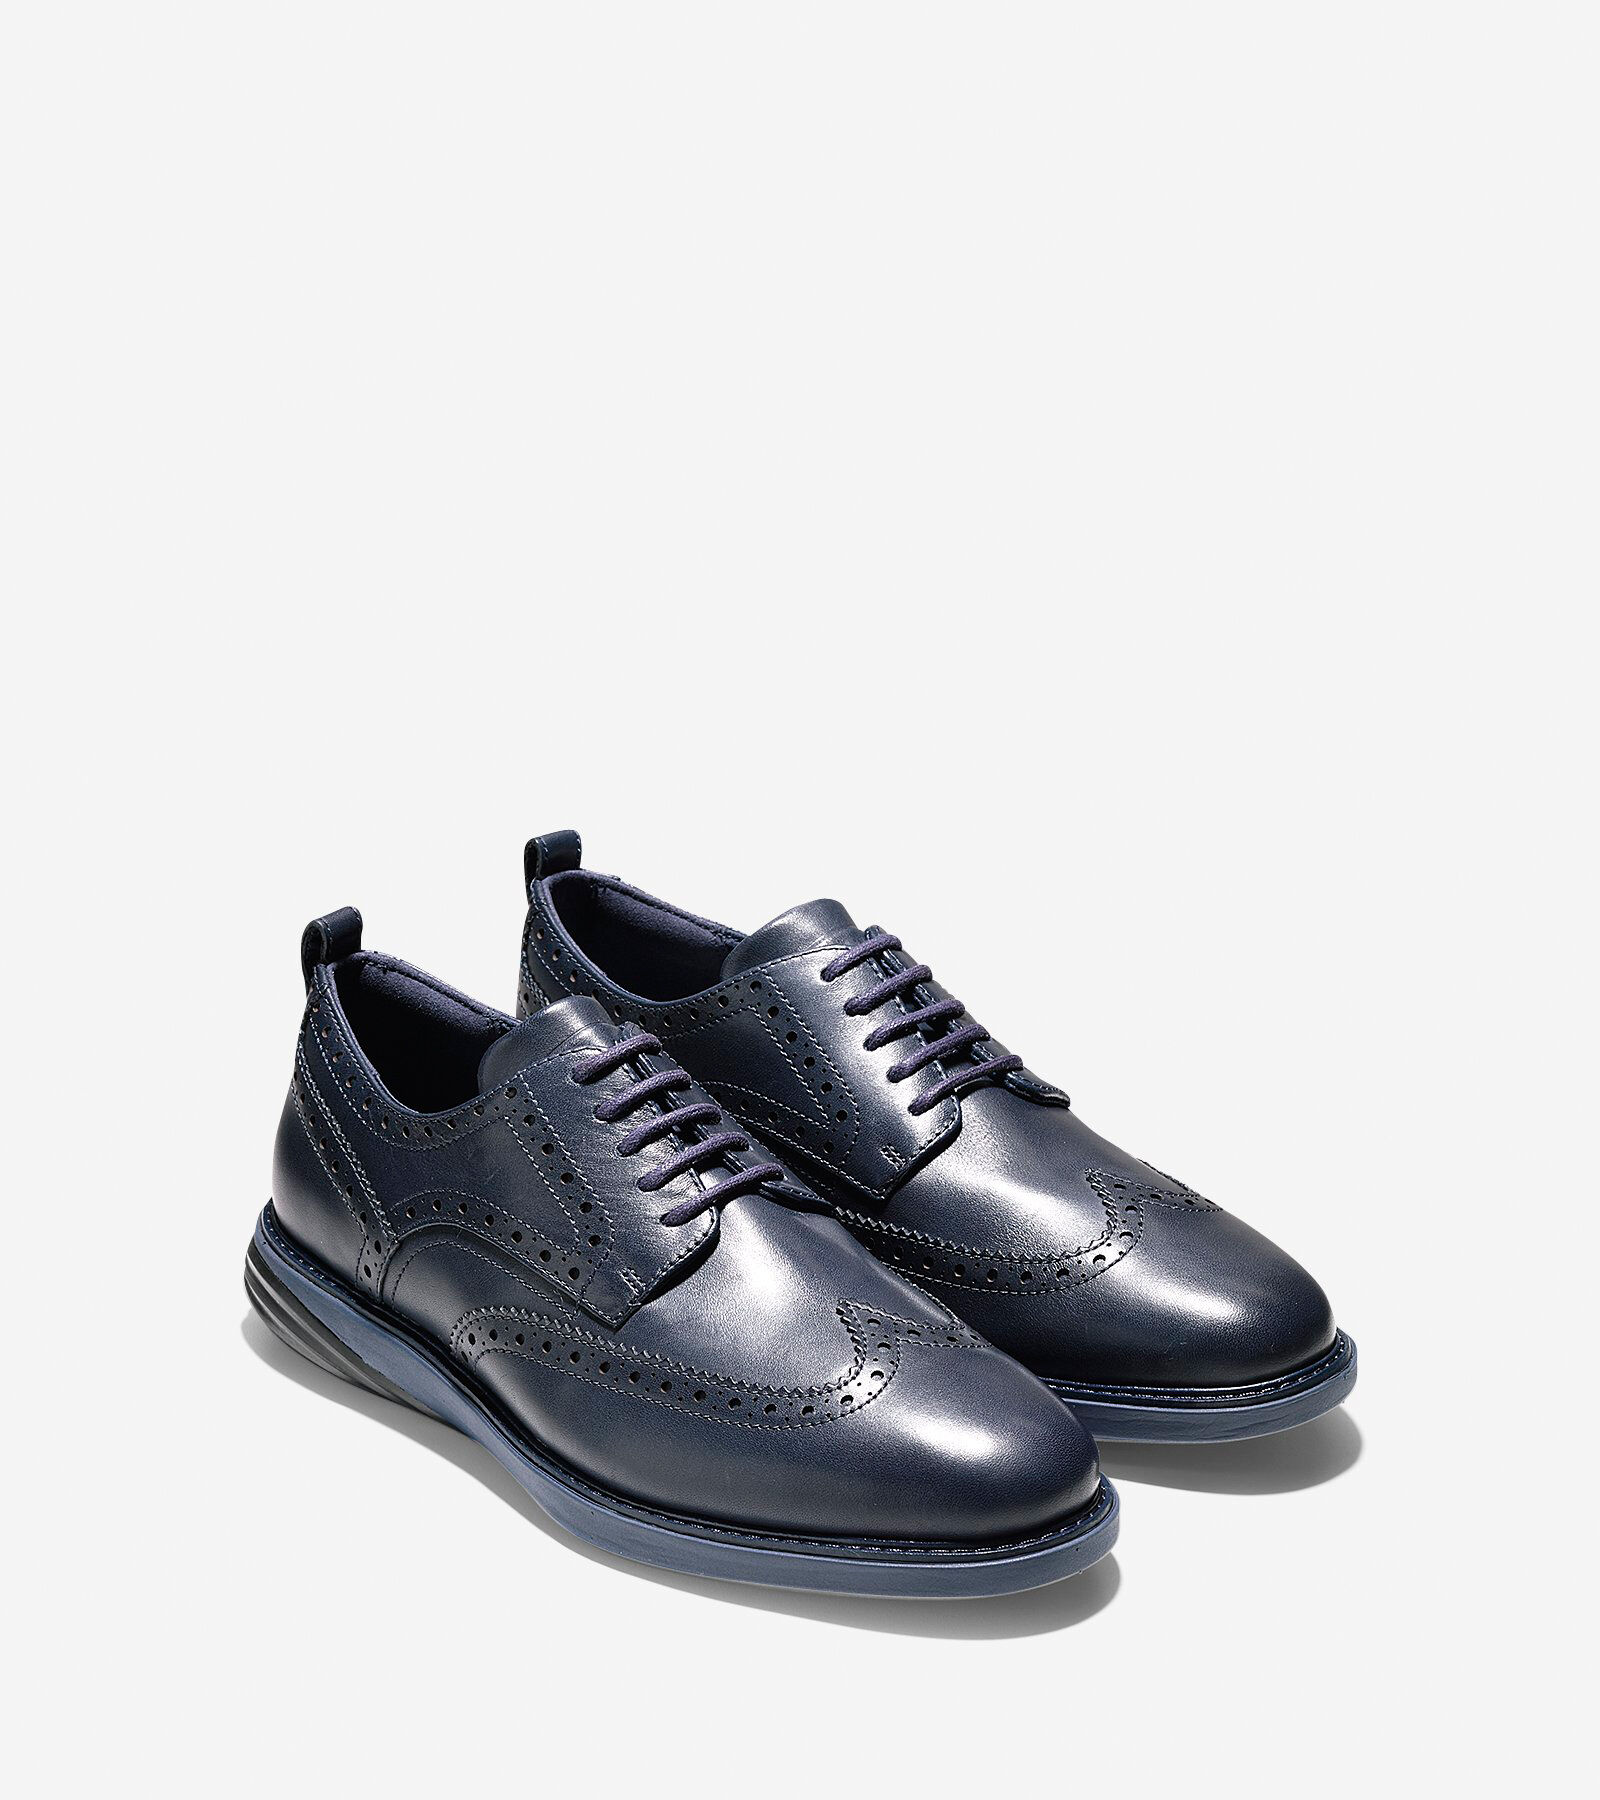 ... Men's GrandEvølution Wingtip Oxford · Men's GrandEvølution Wingtip  Oxford; Men's GrandEvølution Wingtip Oxford. #colehaan